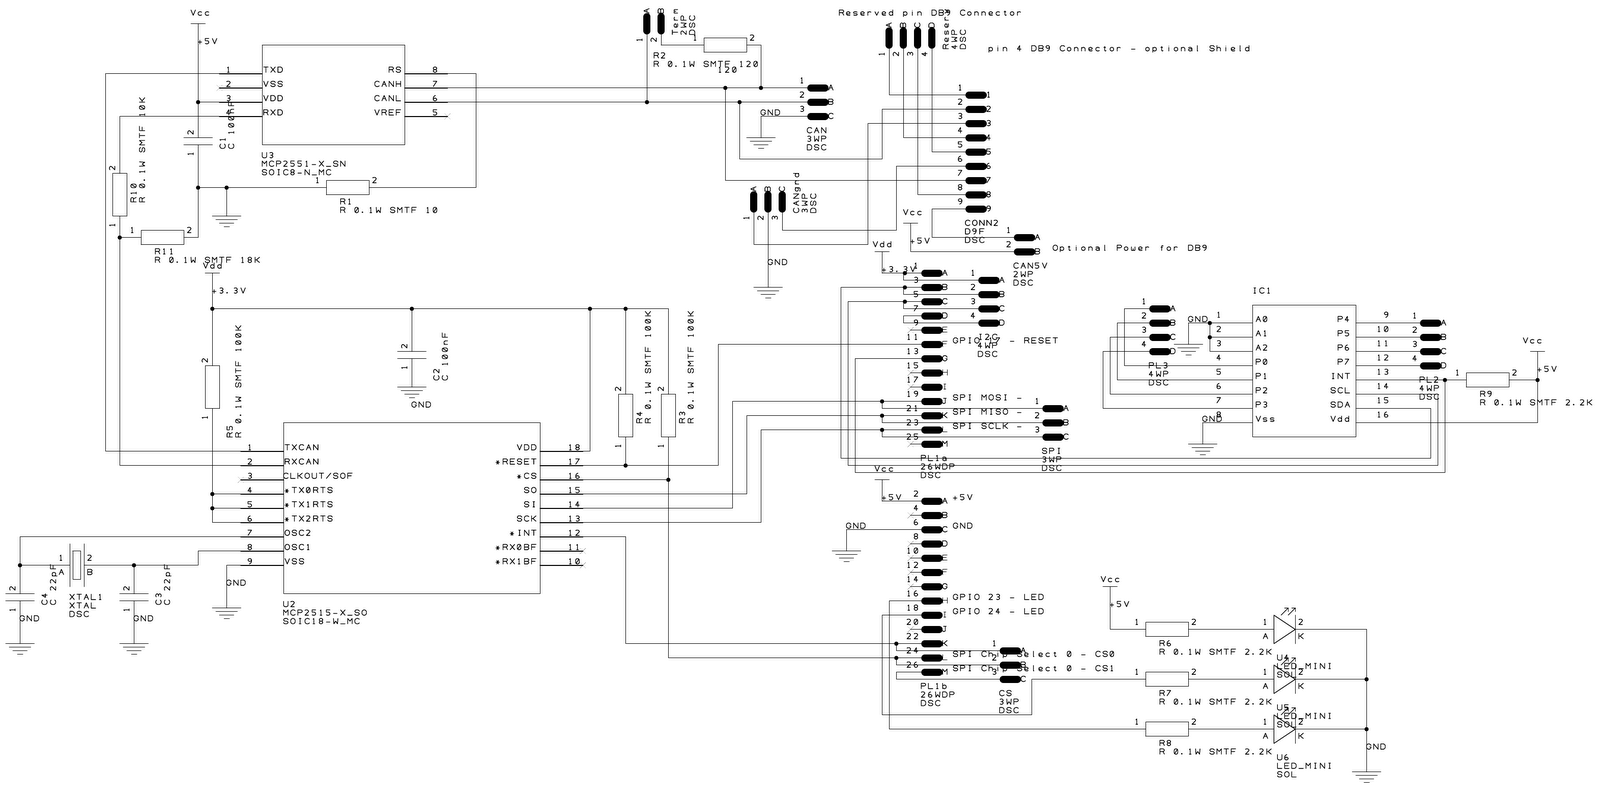 medium resolution of schematic design of pcb board with all components version 0 1 incorrect requires modification